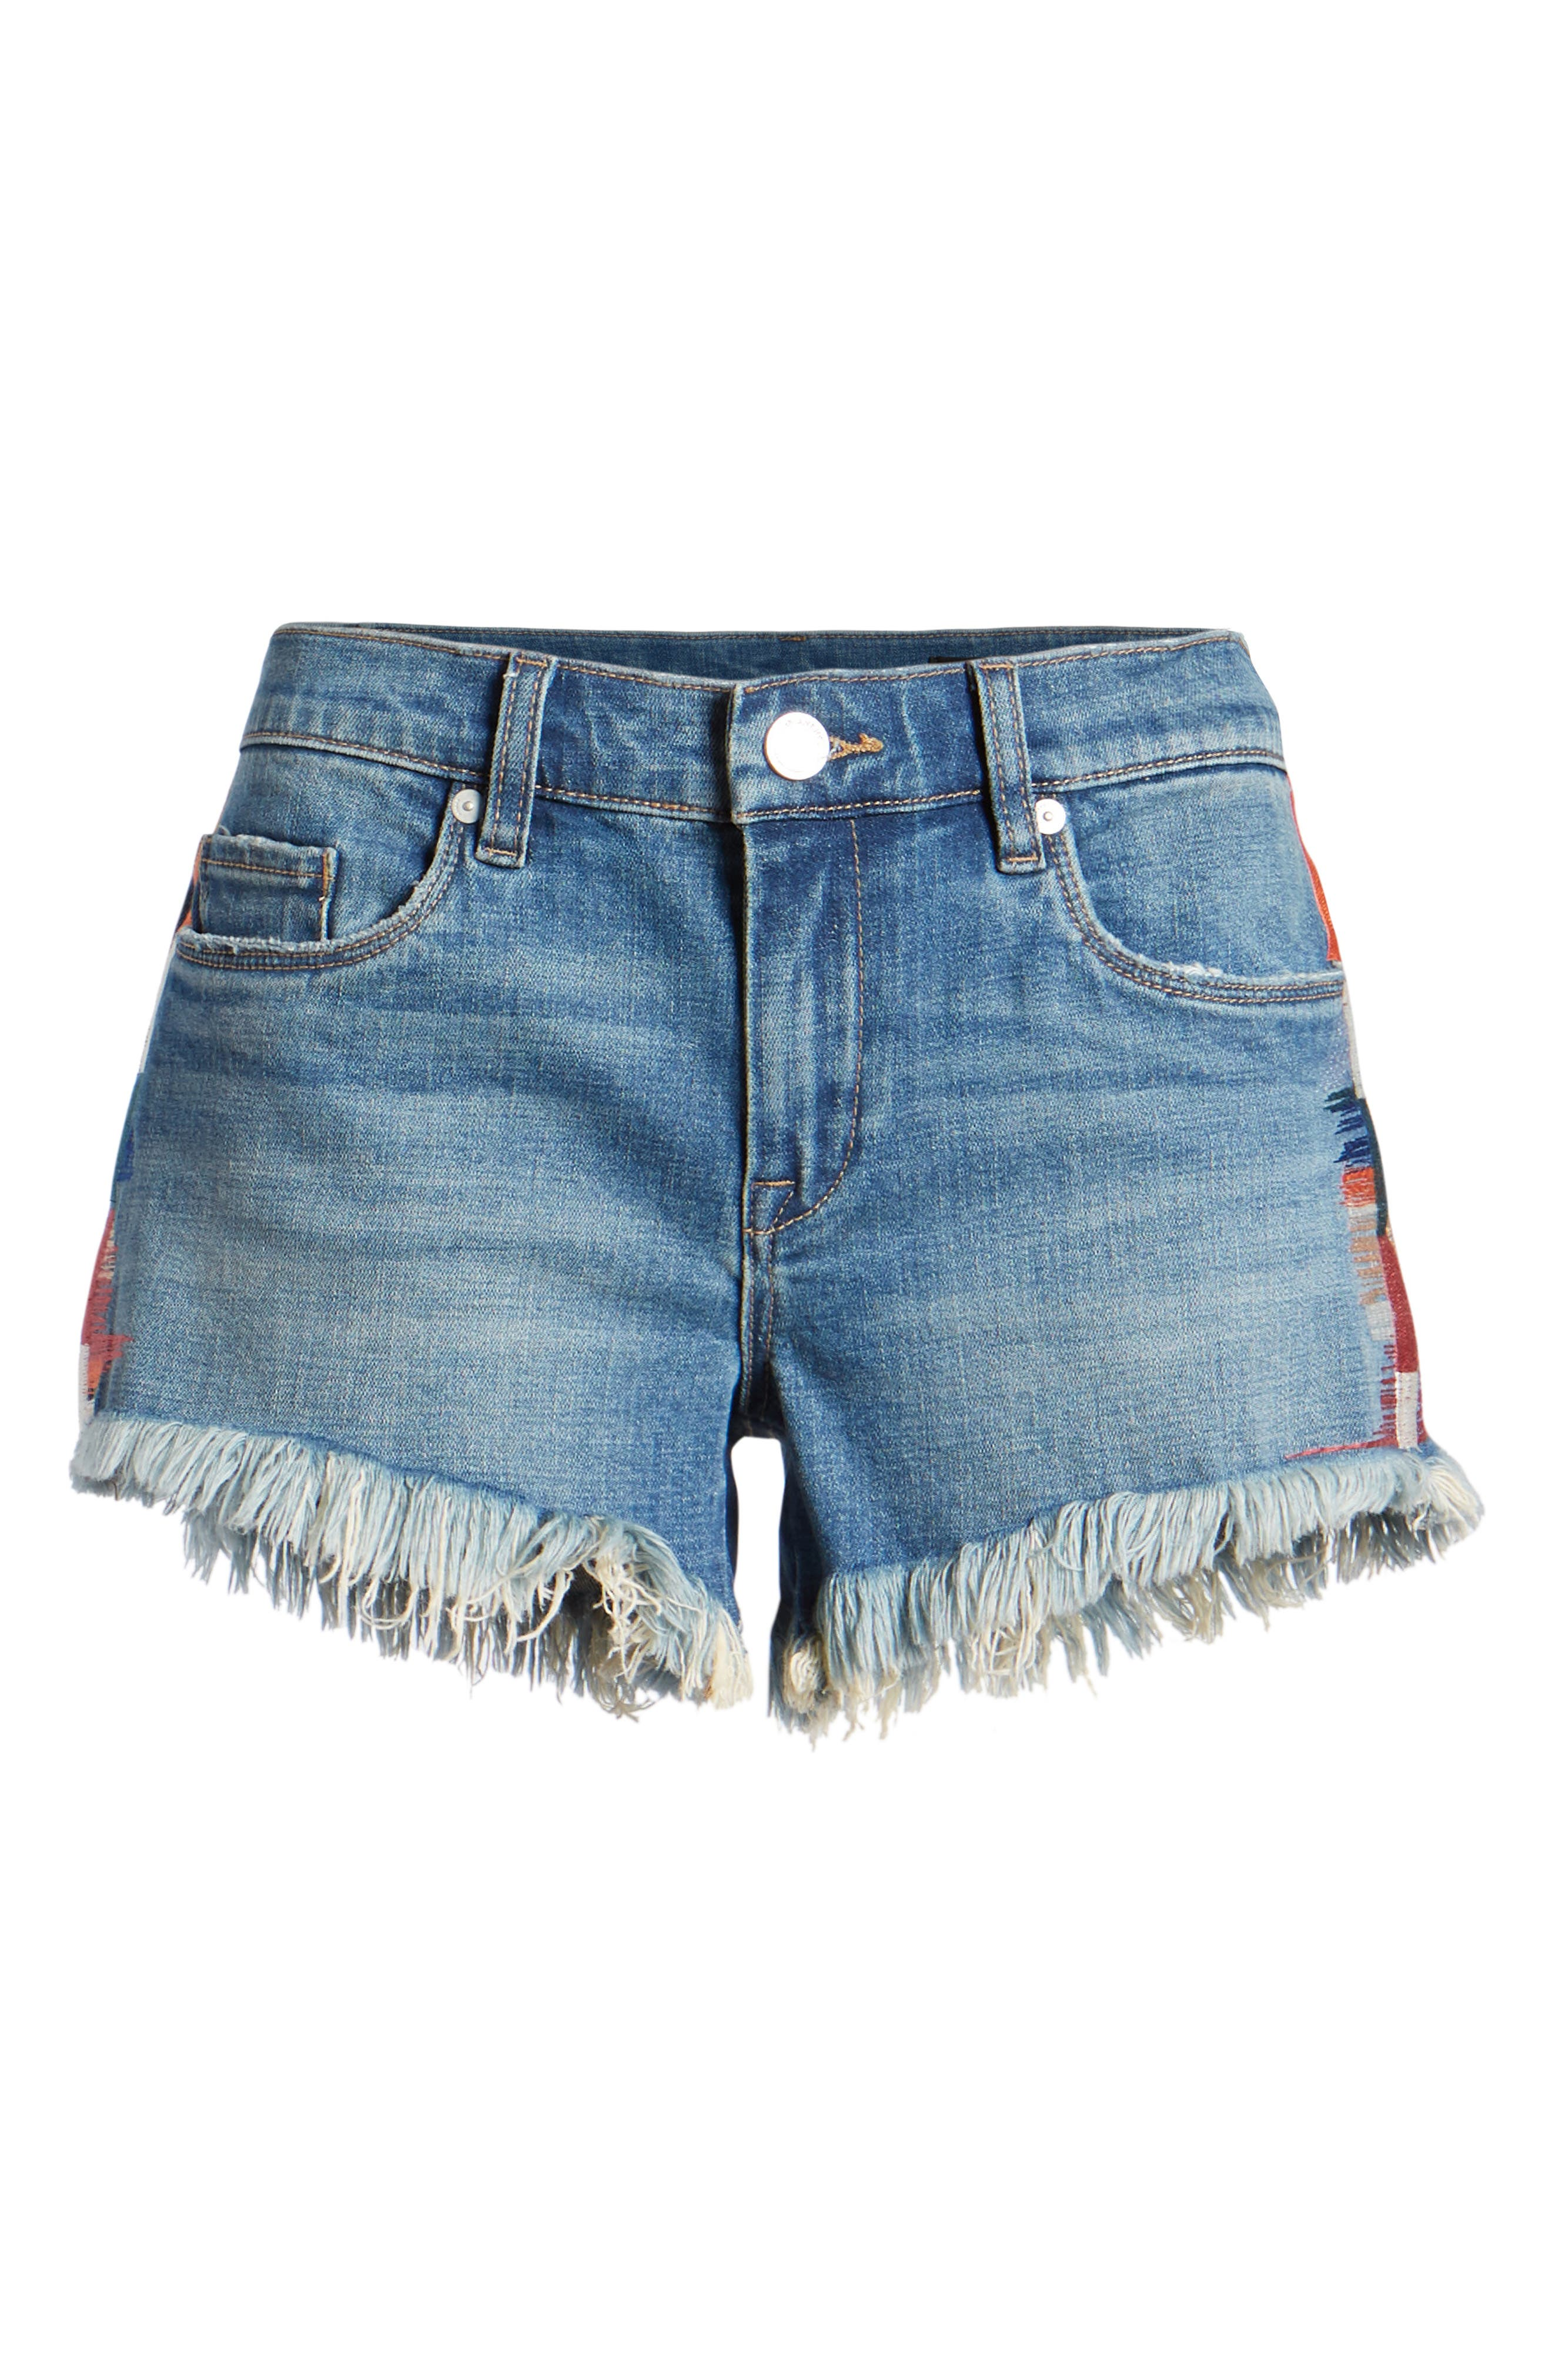 The Astor Embroidered Denim Shorts,                             Alternate thumbnail 7, color,                             400